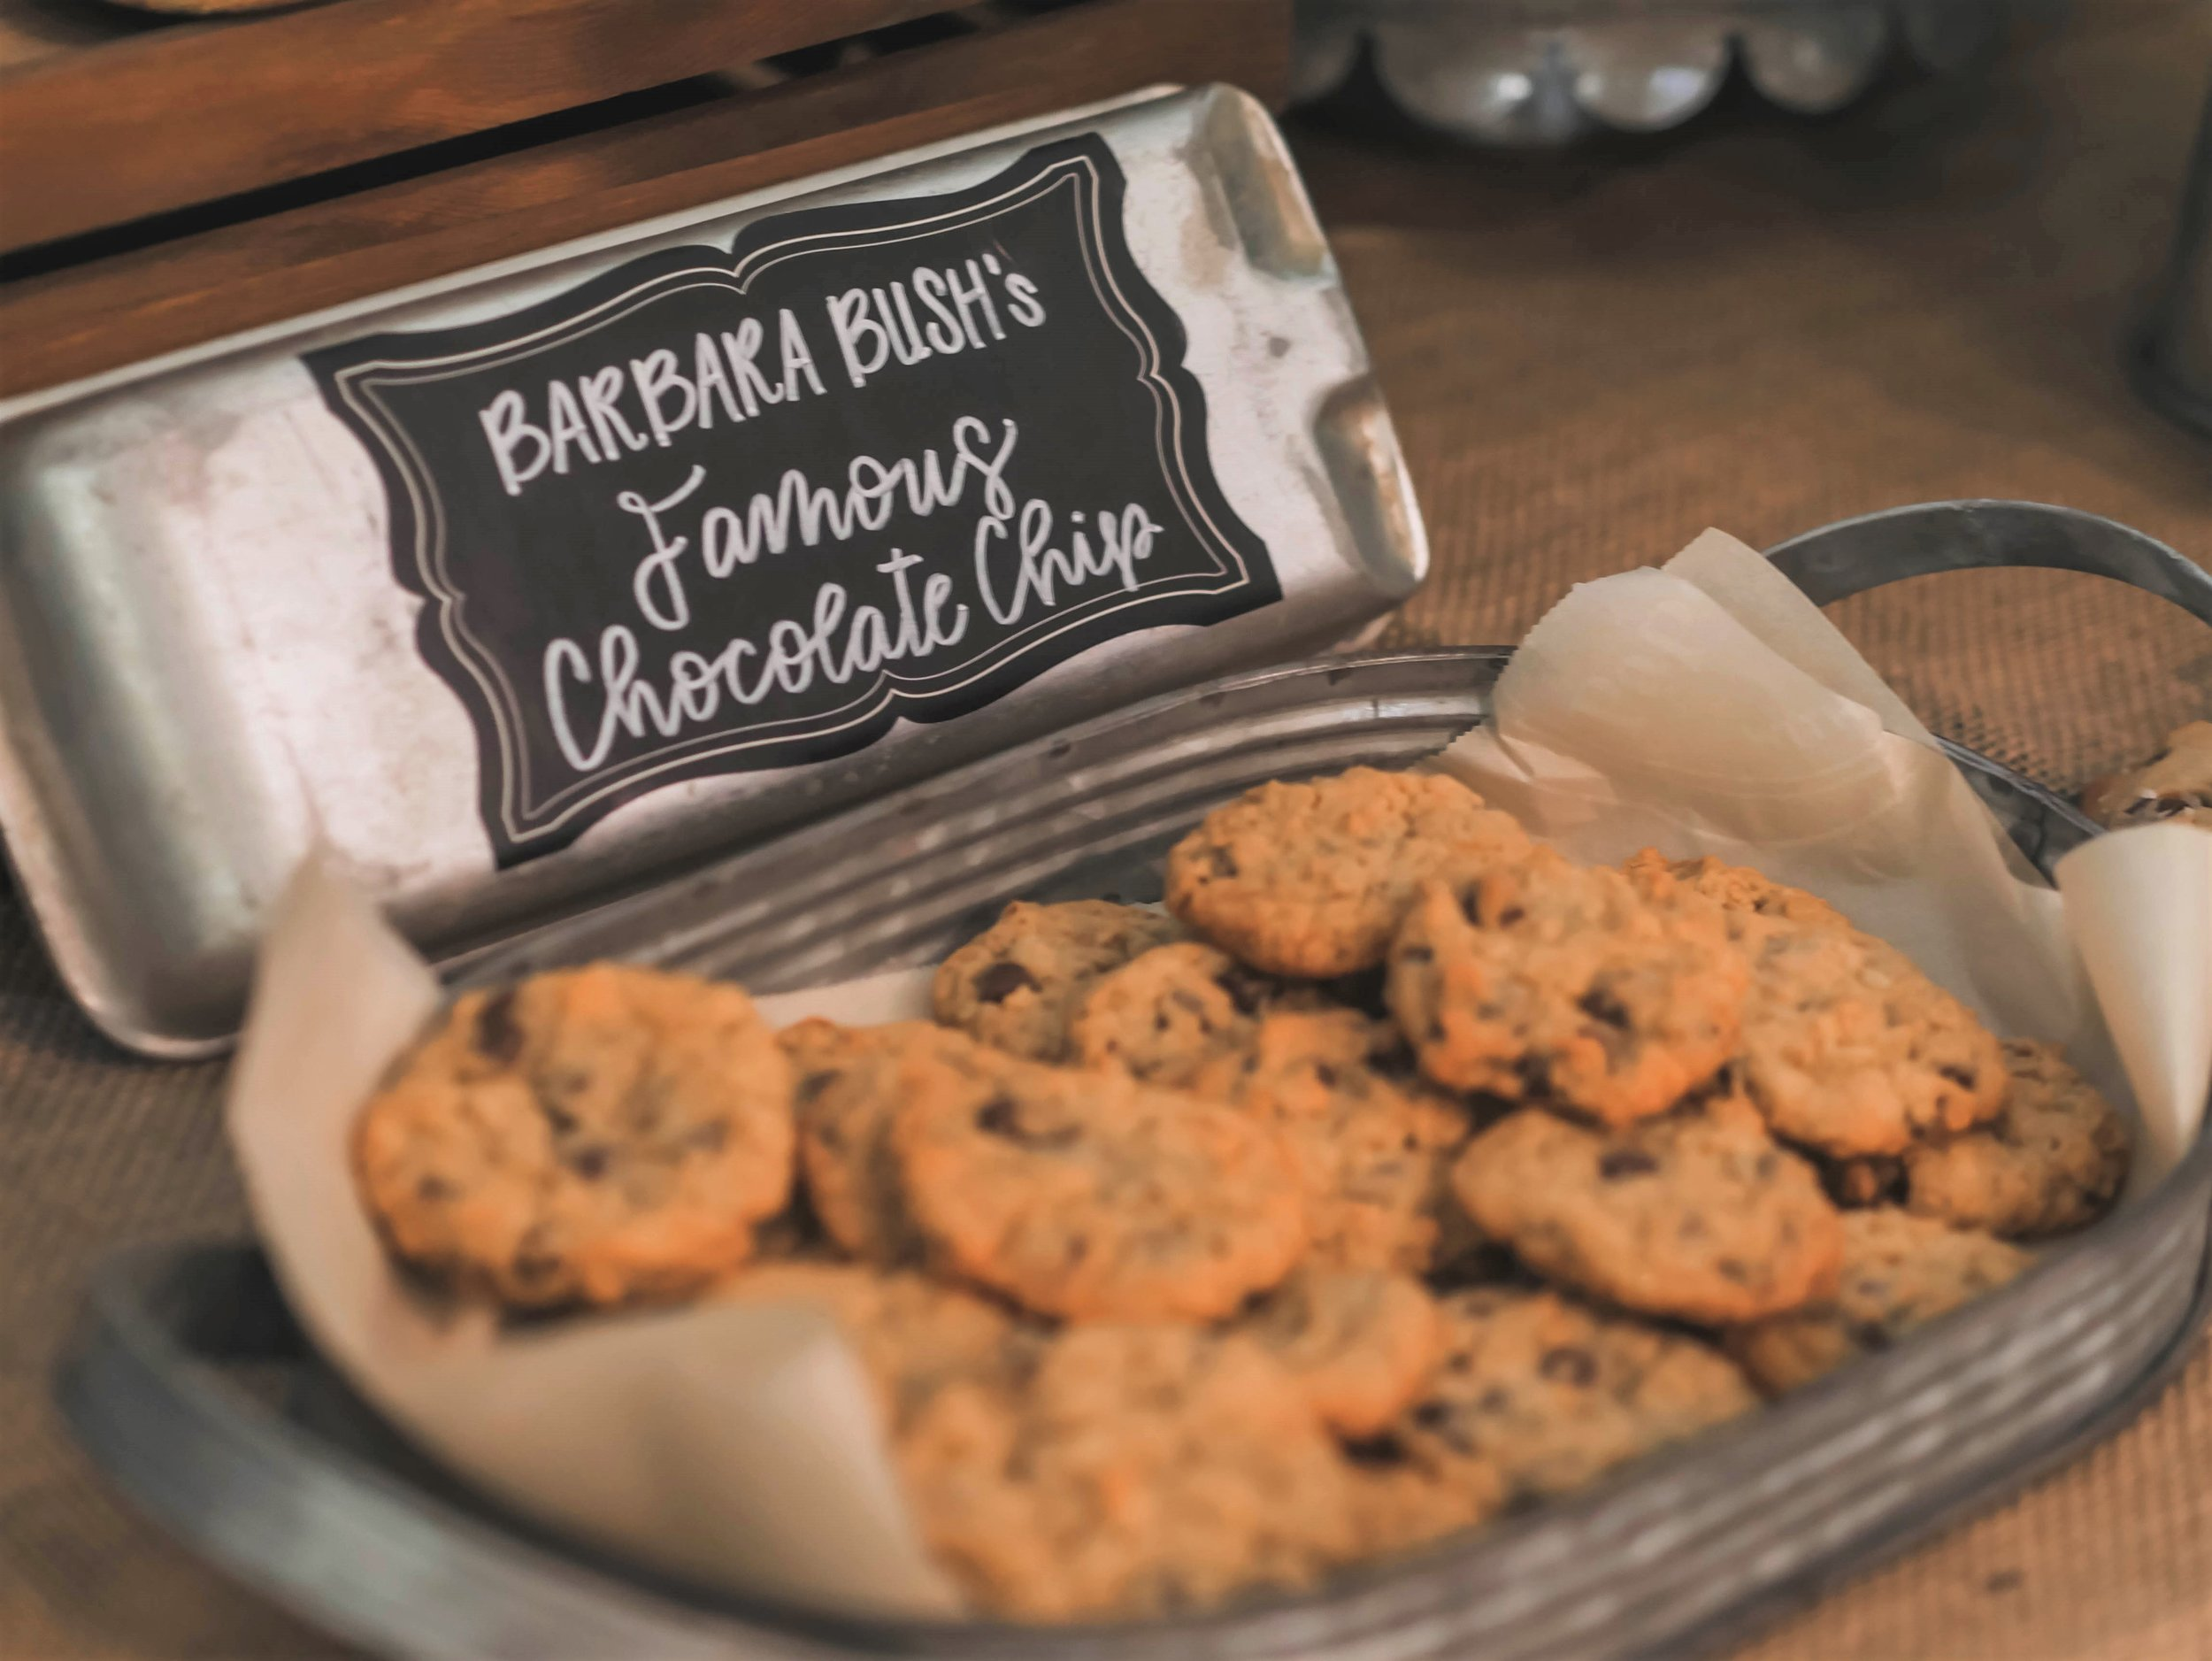 A Texas' favorite Barbara Bush's Famous Chocolate Chip cookies are perfect for a One Smart Cookie graduation party in Austin Texas - planned by Mint Event Design www.minteventdesign.com